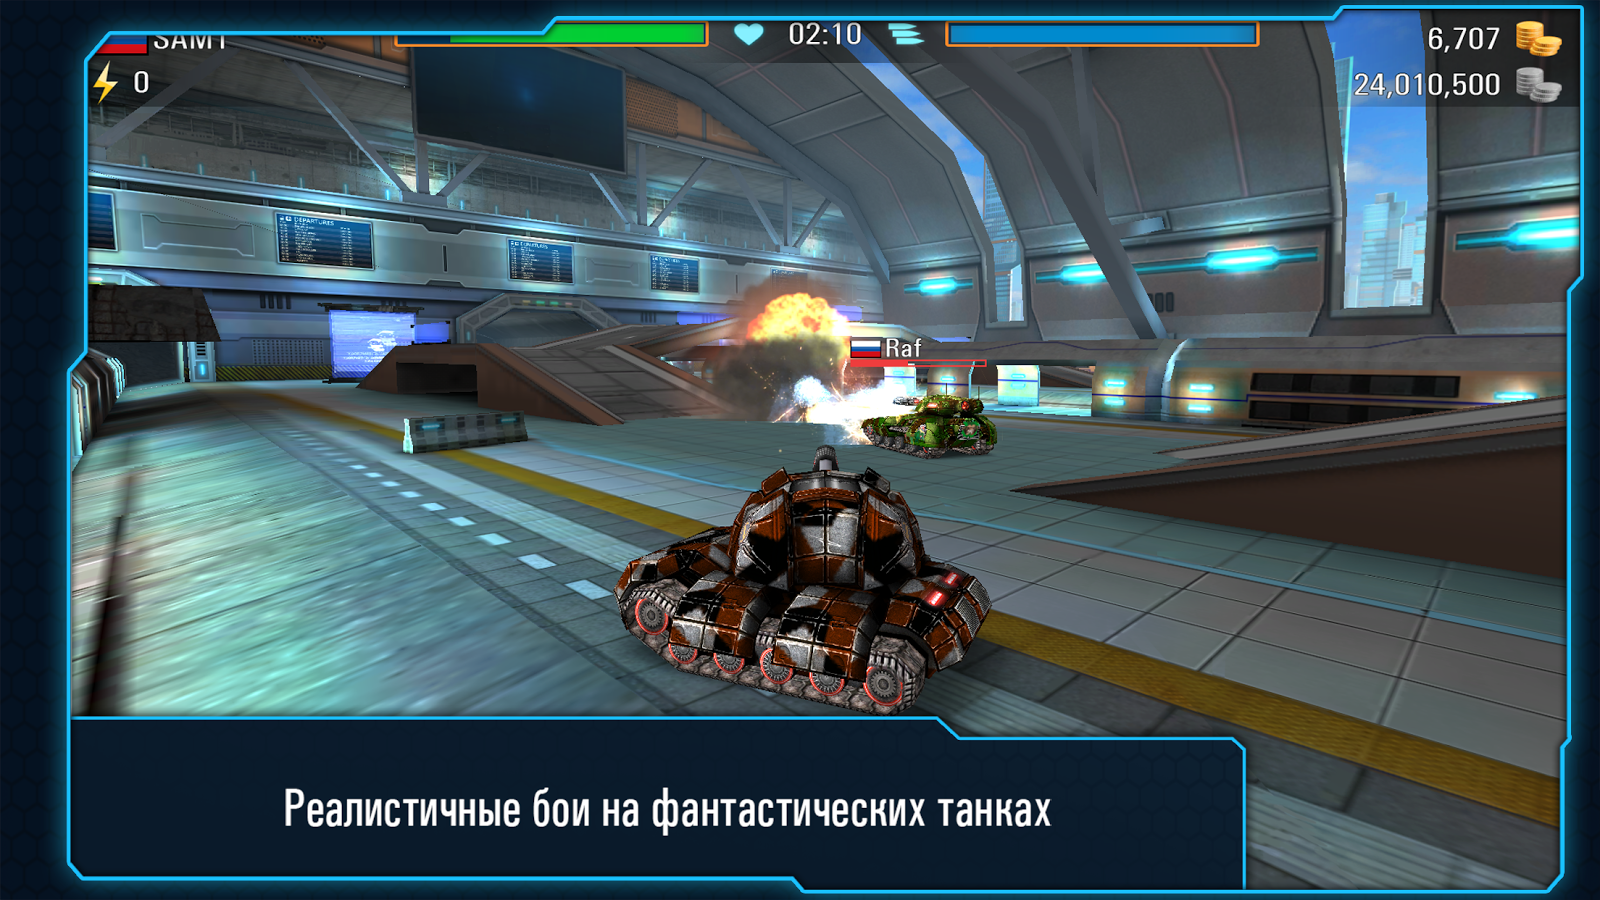 IRON MAN 3: The Official Game Android Walkthrough - v1.0.2 ...